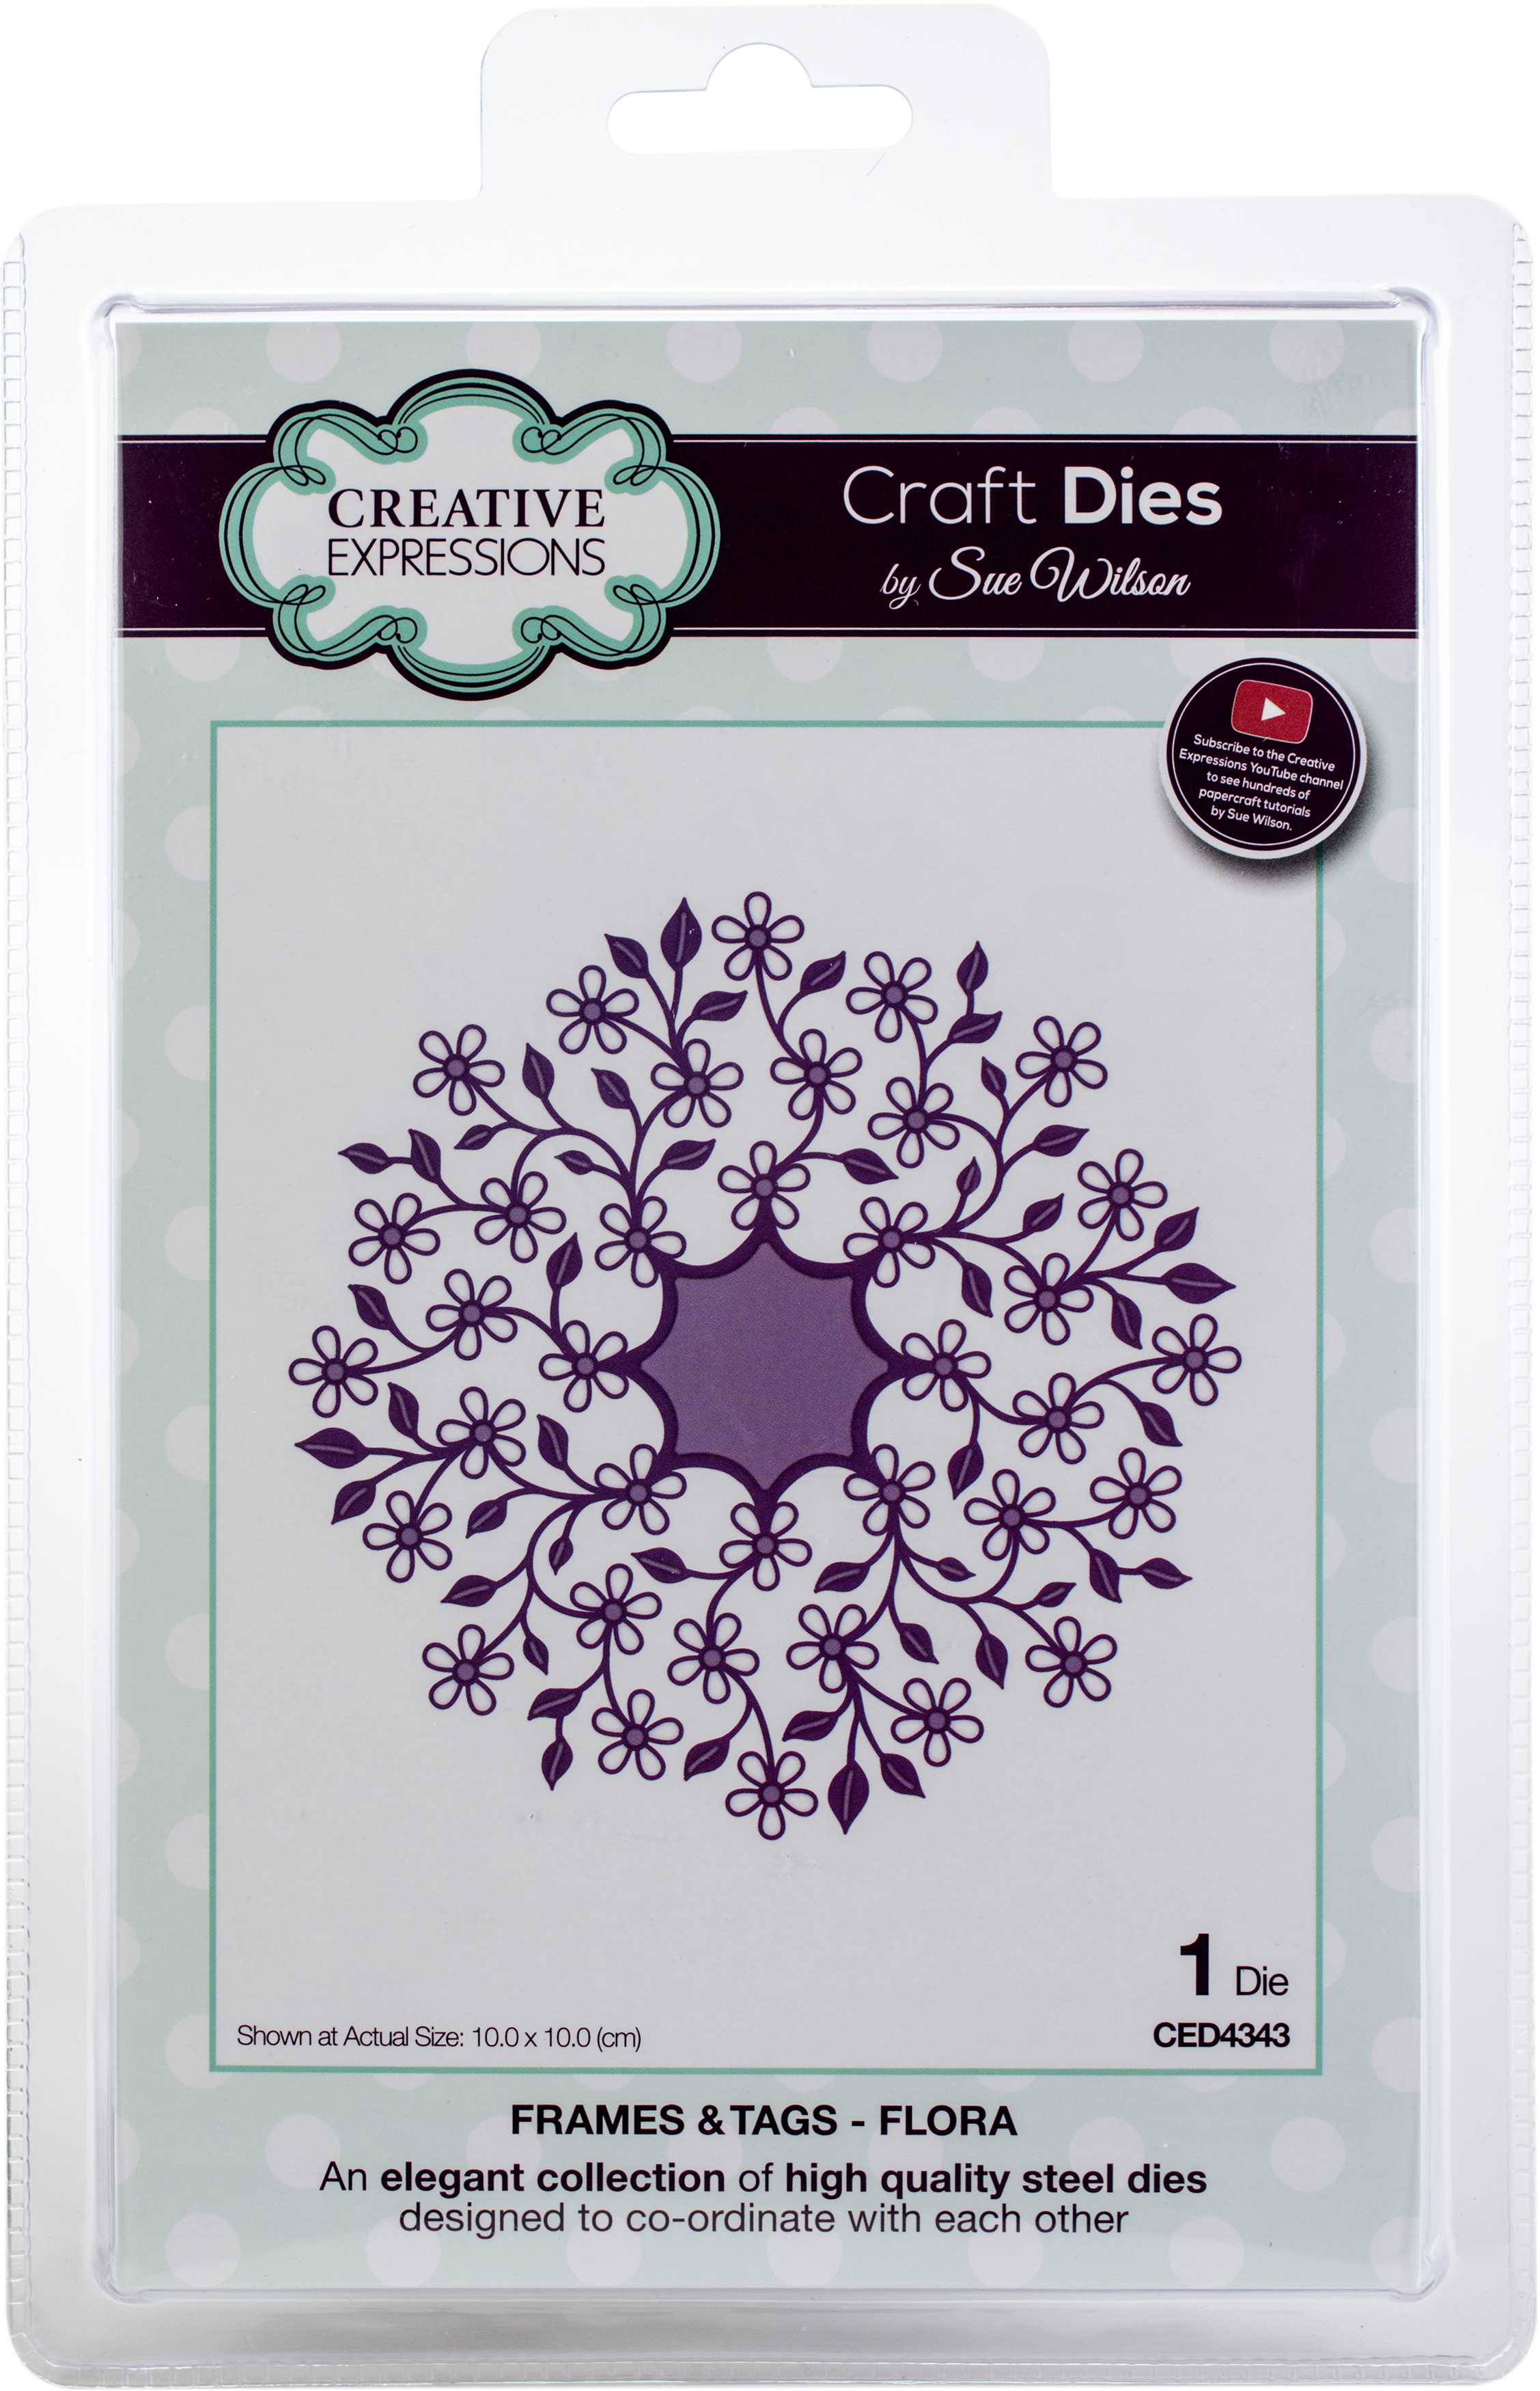 Creative Expressions Craft Dies By Sue Wilson-Frames & Tags-Flora